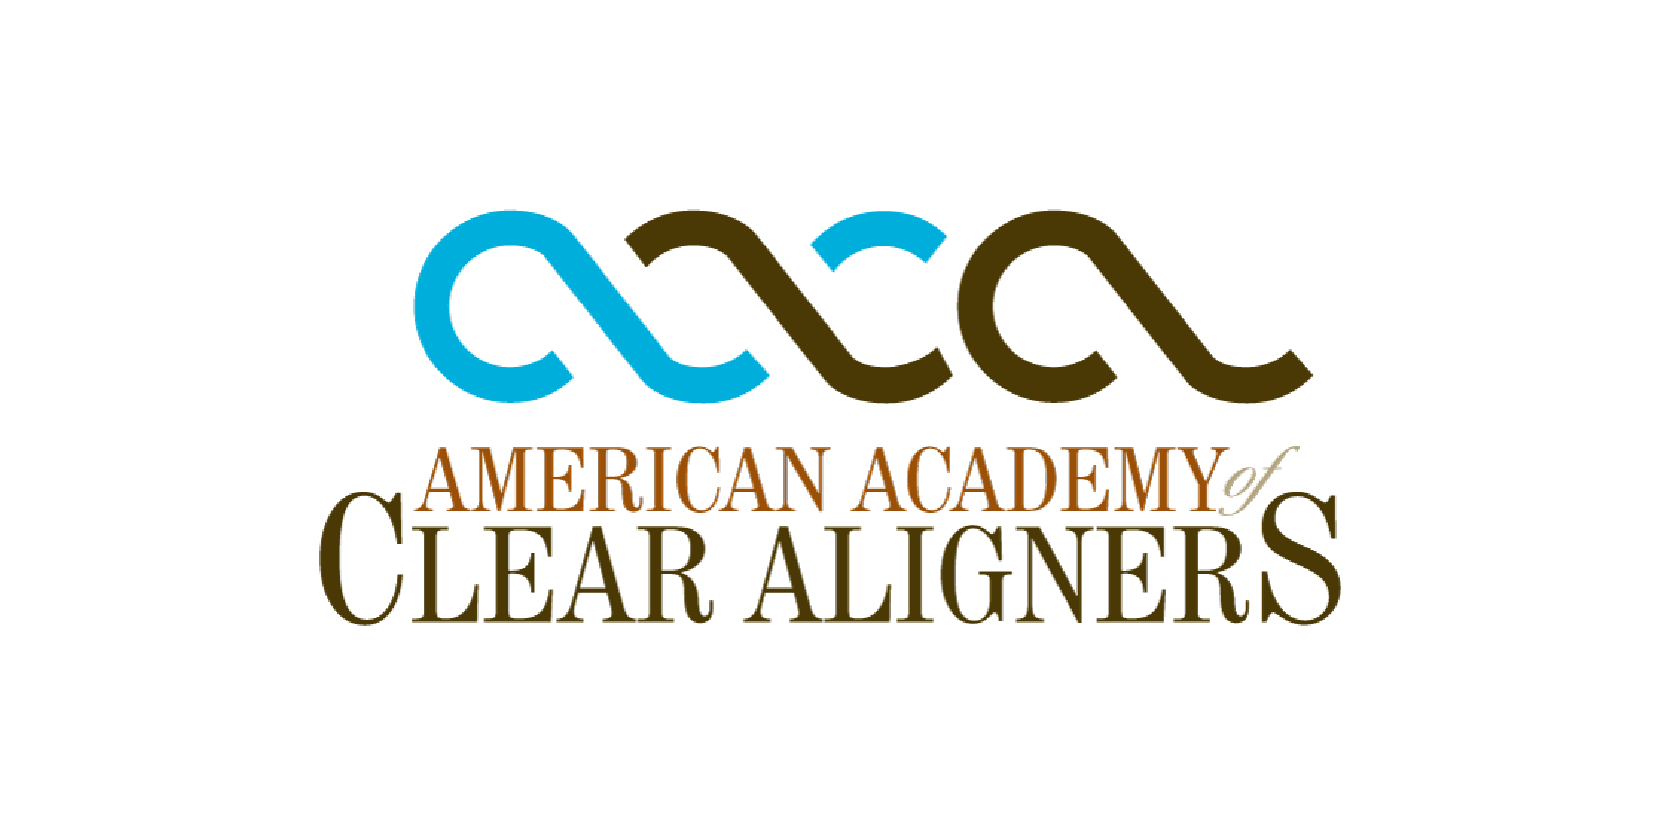 - AACA is composed of dentists who embrace the use of Clear Aligner Orthodontic Therapy in their Dental Offices, bringing together the top practitioners to lead and educate dentists who wish to attain excellence.